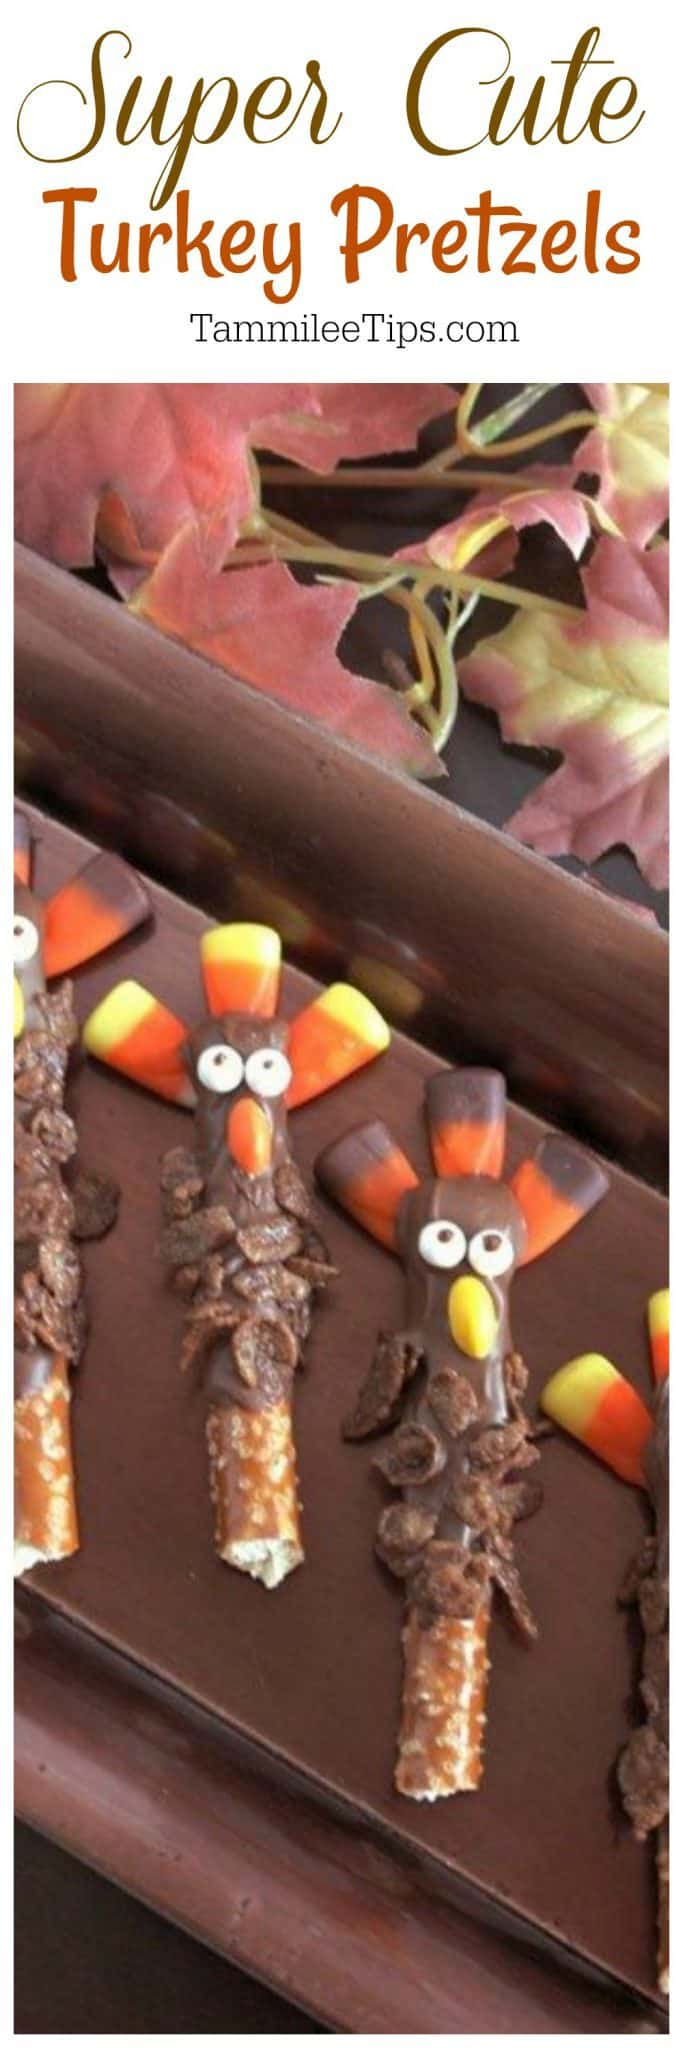 How to make super cute Turkey Pretzel Rods for Thanksgiving. The perfect family night activity #recipe #turkey #thanksgiving